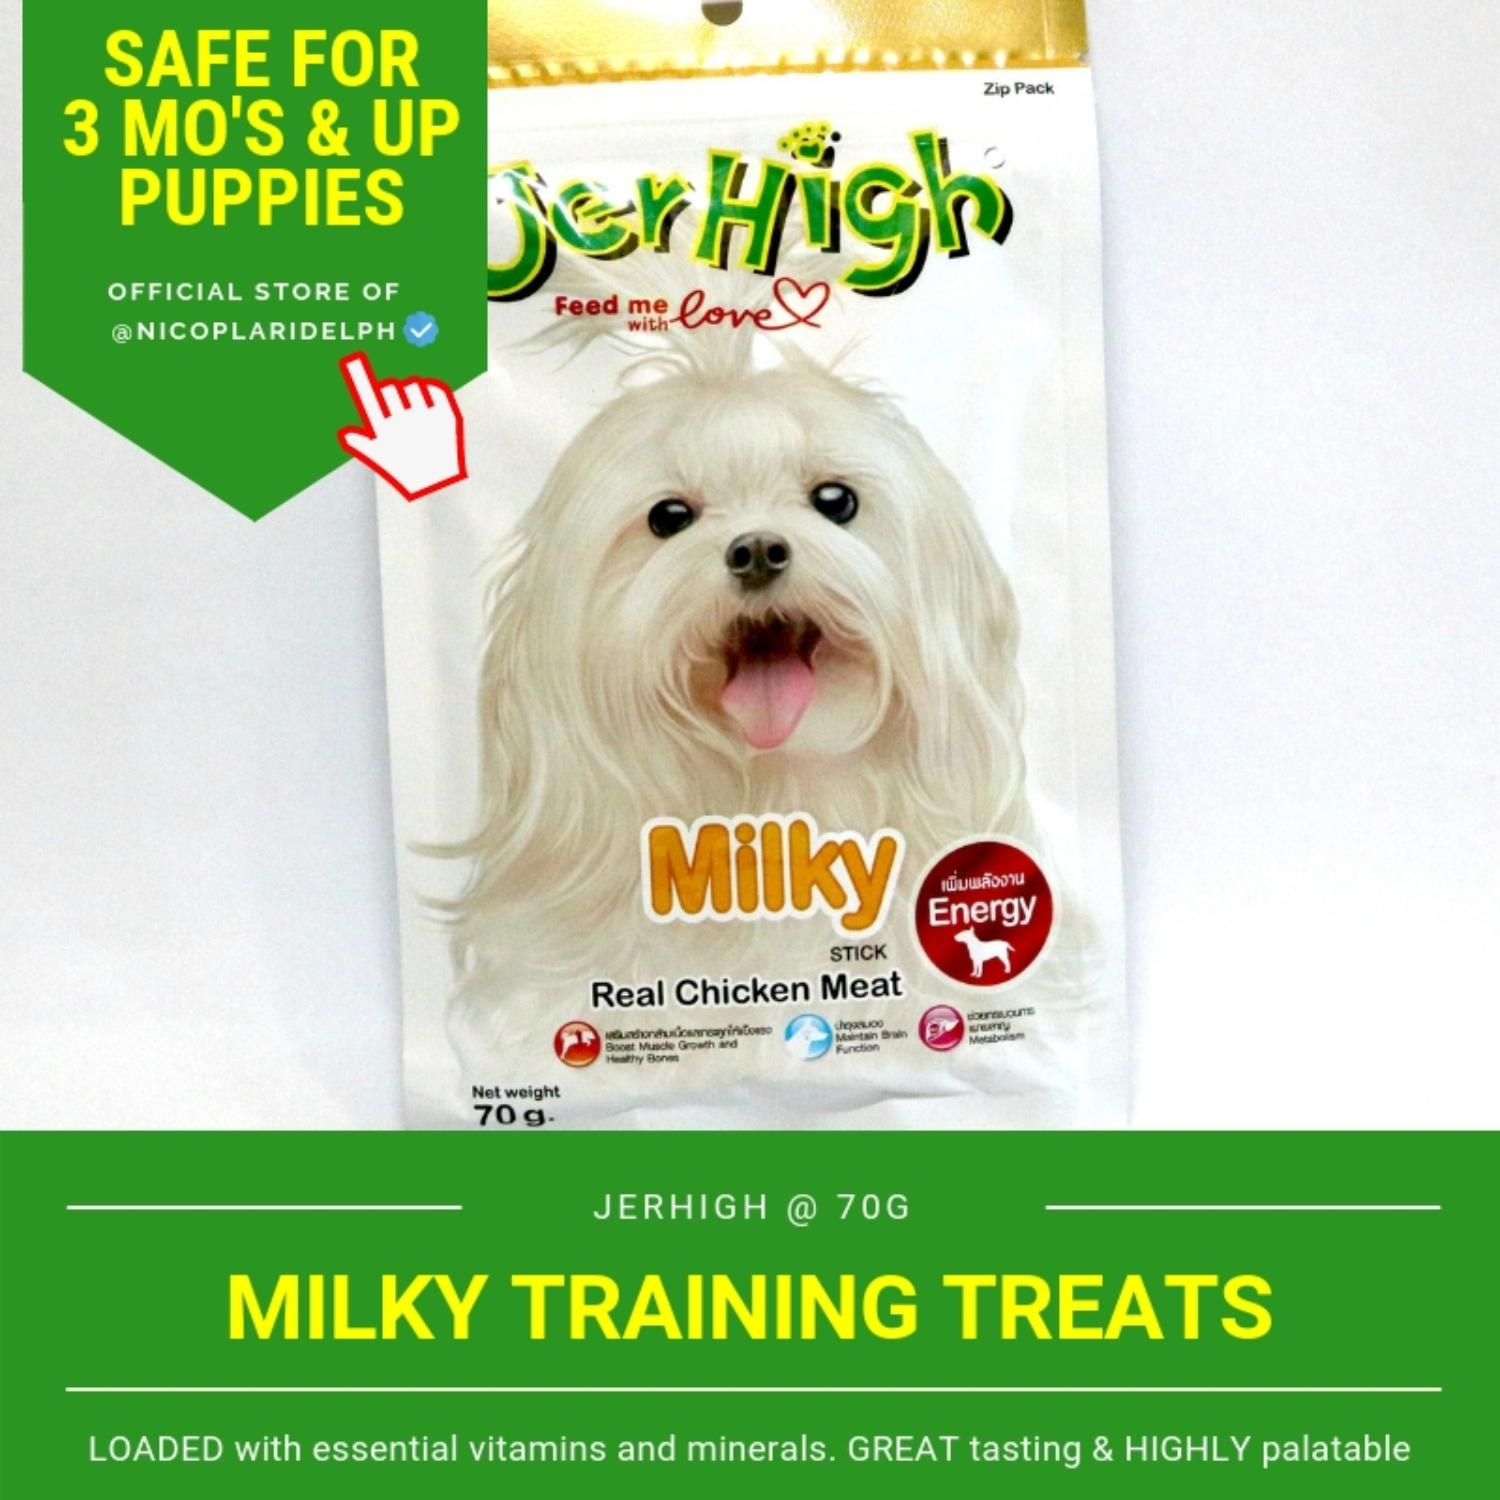 Jerhigh Milky Stick With Real Chicken Meat For Puppies And Adult Dogs (70g) By Nicoplaridelph.